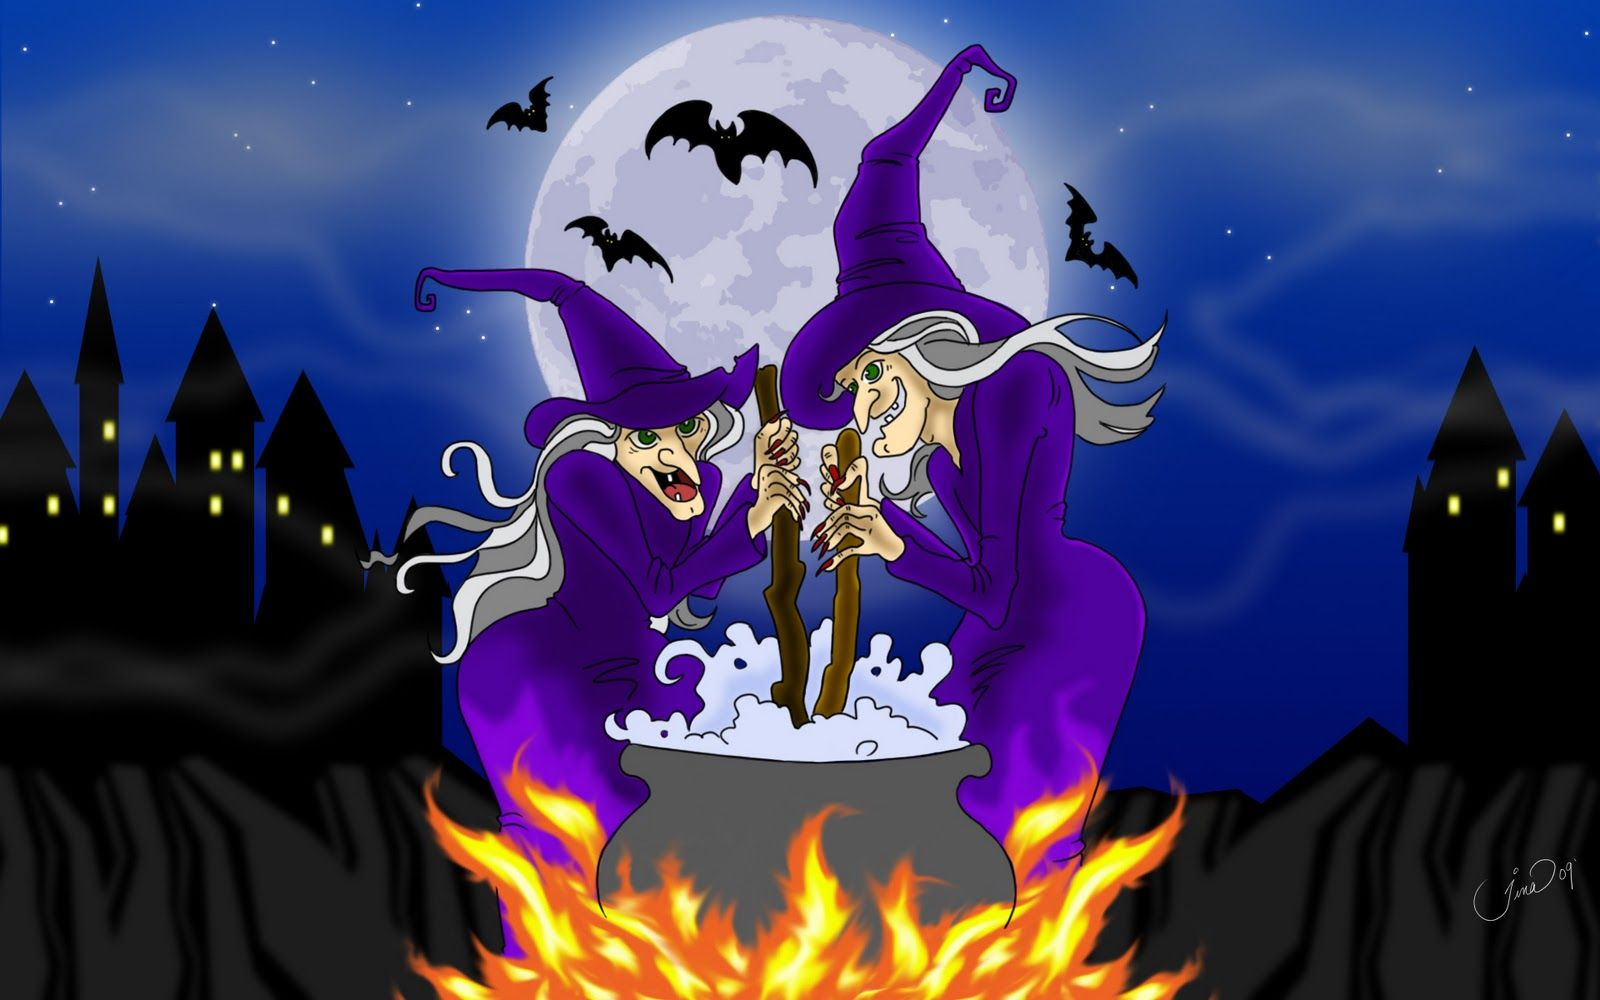 Good Wallpaper Halloween Screensaver - 16ed1c9a9c3331ccdd10db6fede53fb5  Snapshot_152118.jpg